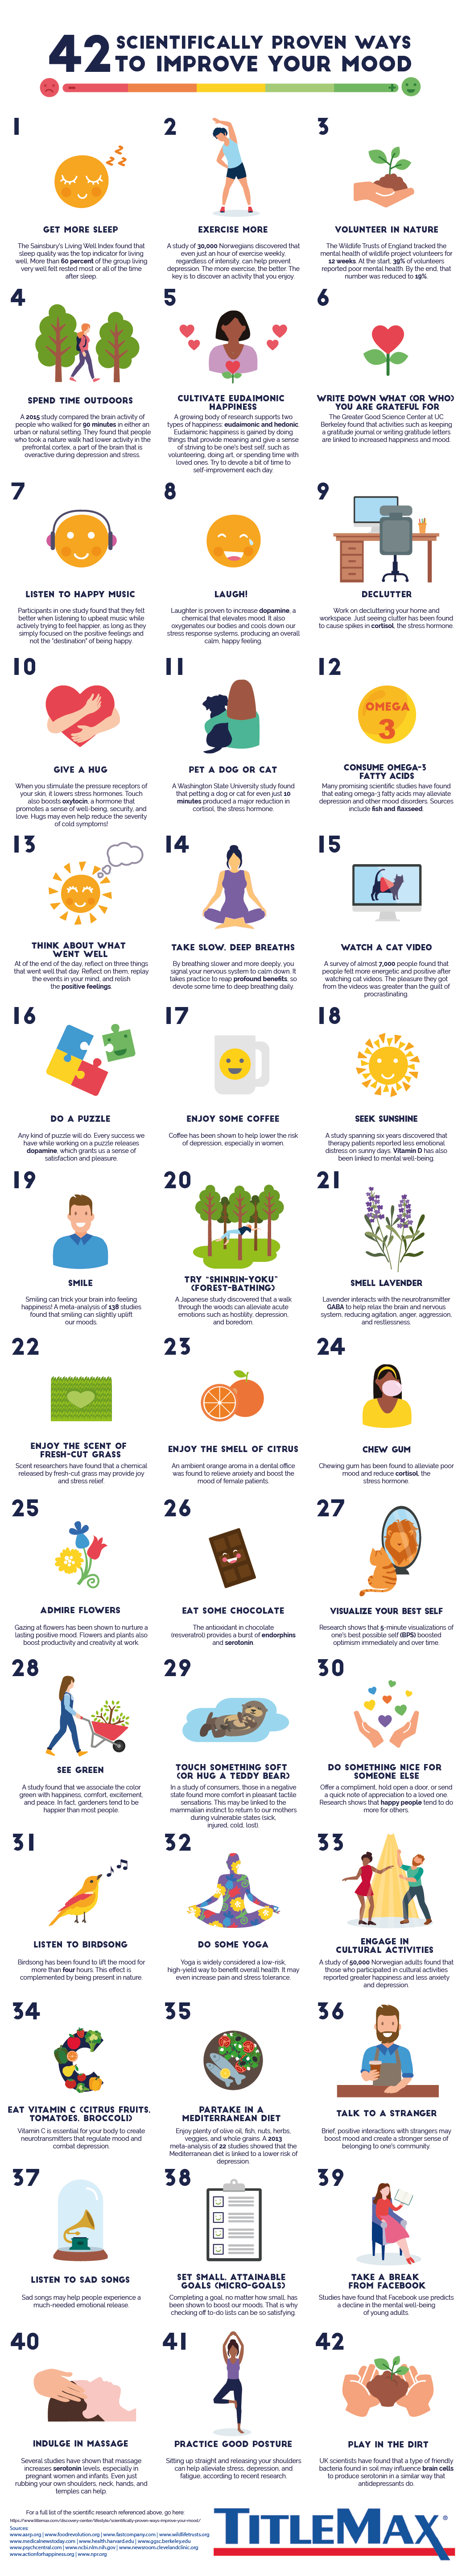 42 Scientifically Proven Ways to Improve Your Mood